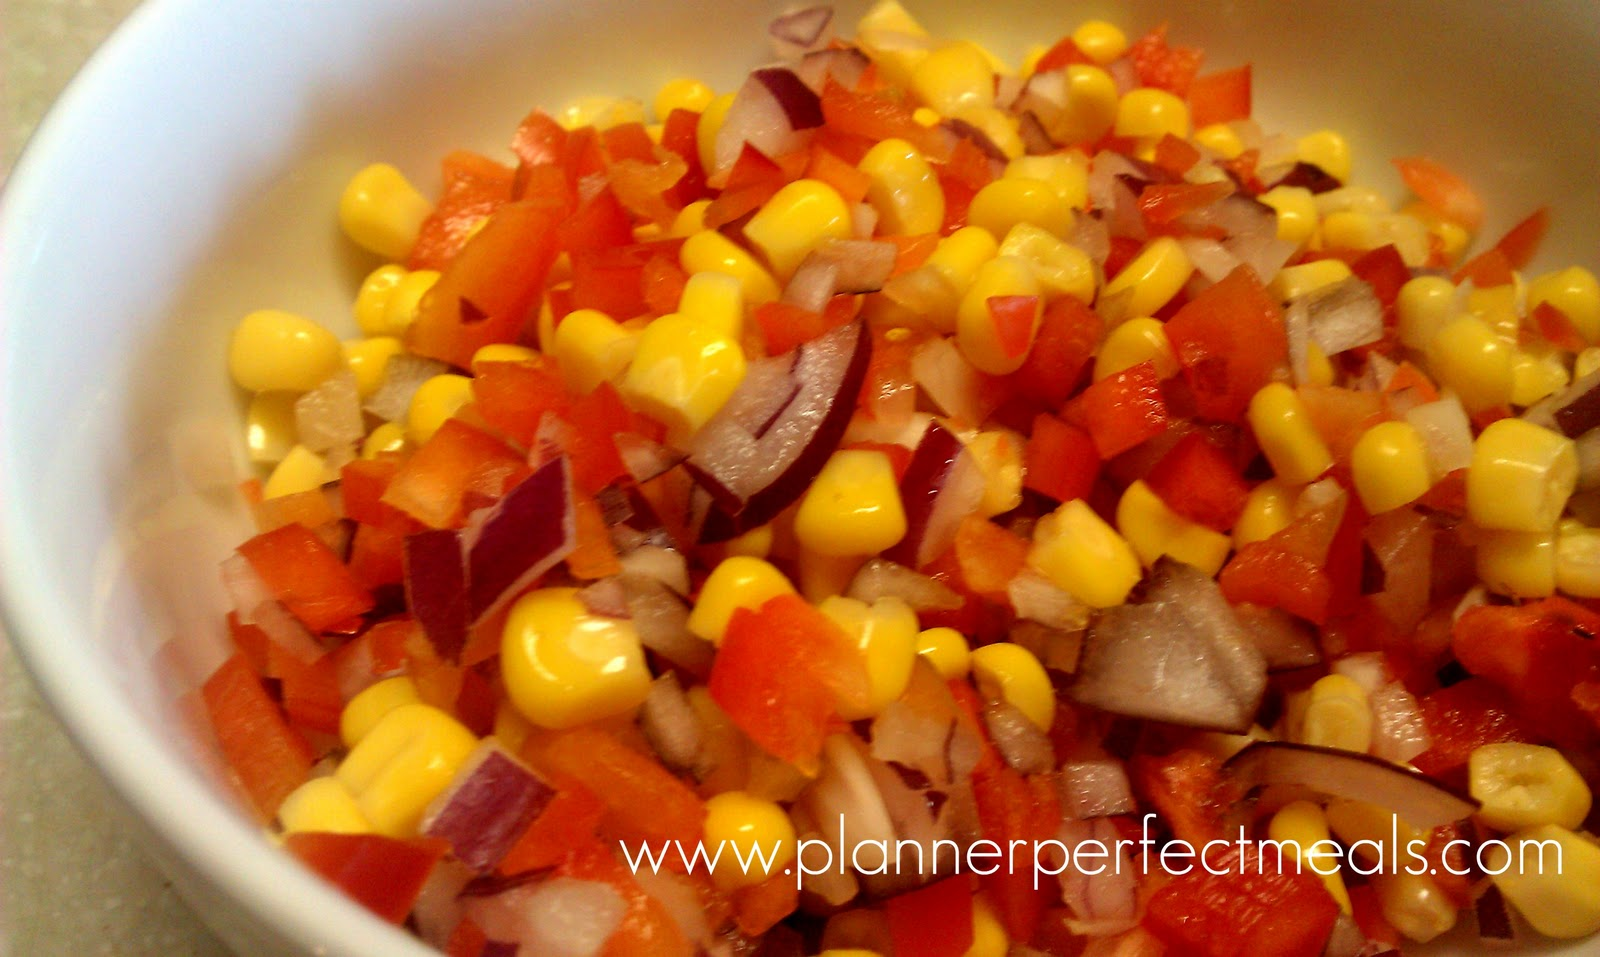 corn relish with red onion, corn and red bell pepper